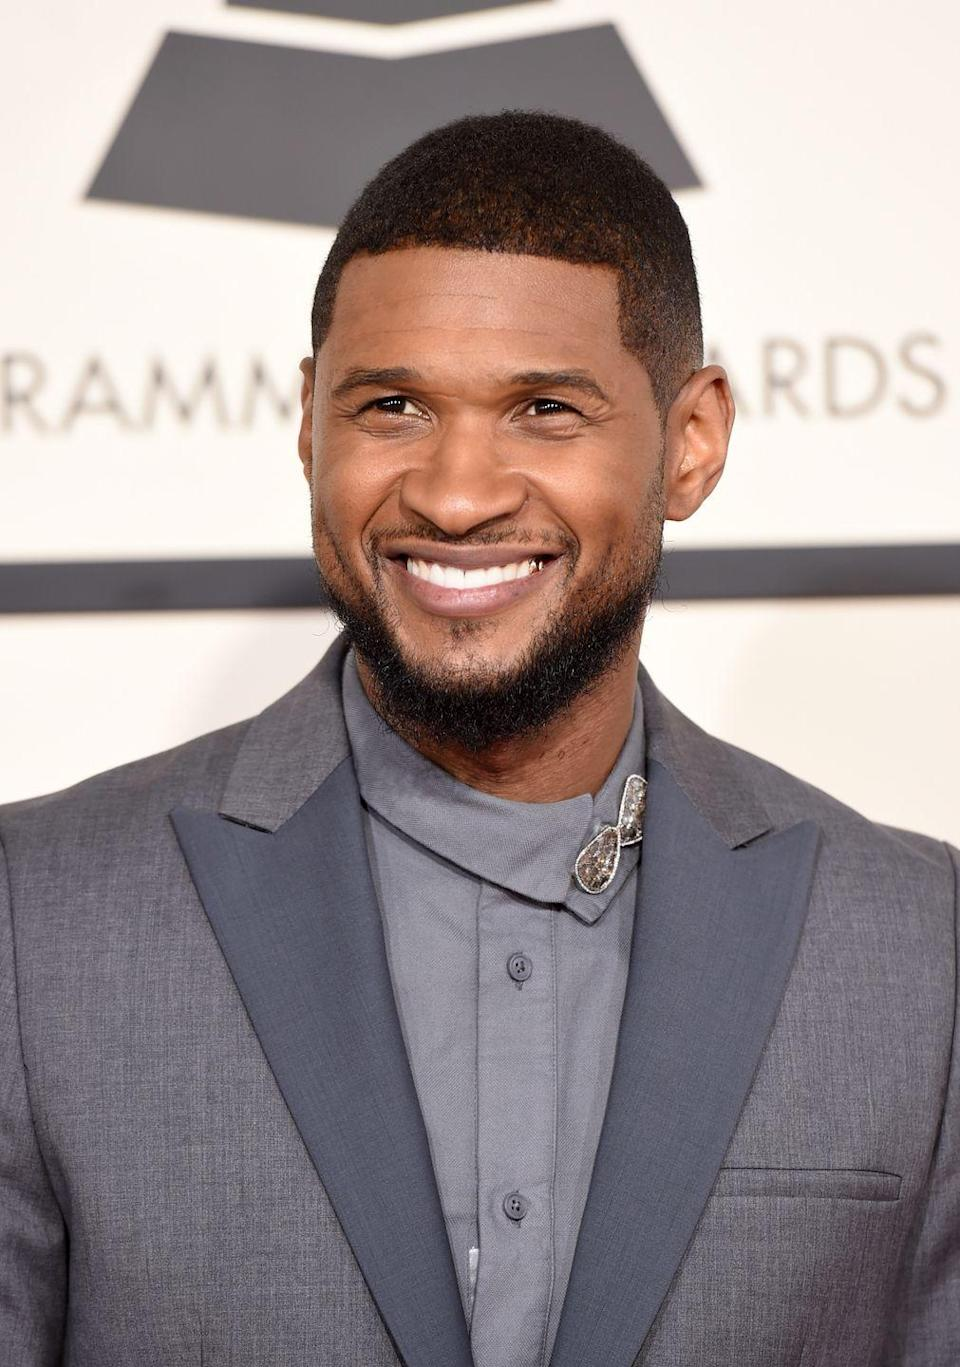 <p>While many of the celebrities on this list weren't <em>Star Search</em> winners, Usher, won the teen vocalist category back in 1991. The R&B super star is also one of the few <em>Star Search</em> alums, along with Christina Aguilera, to mentor and judge young talent on <em>The Voice</em>.</p>